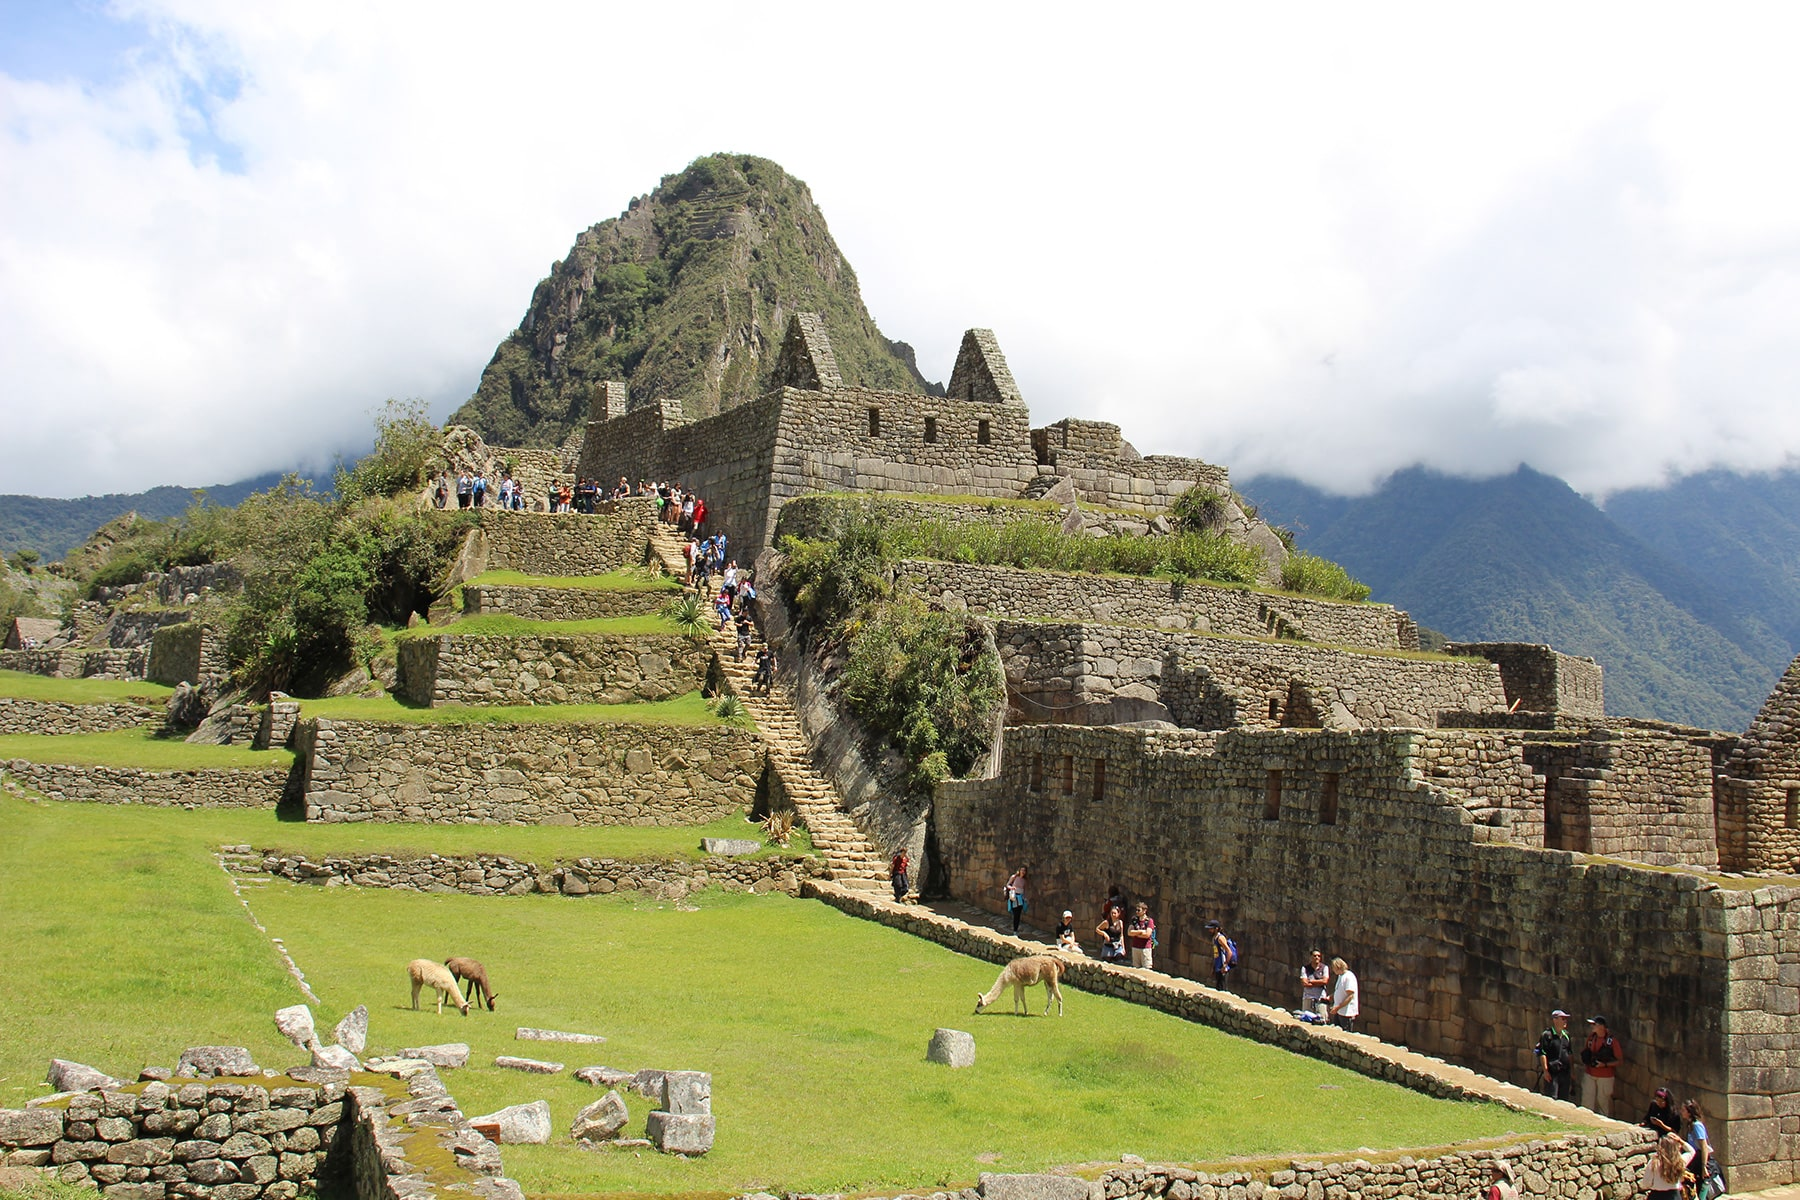 View on stone houses in Machu Picchu